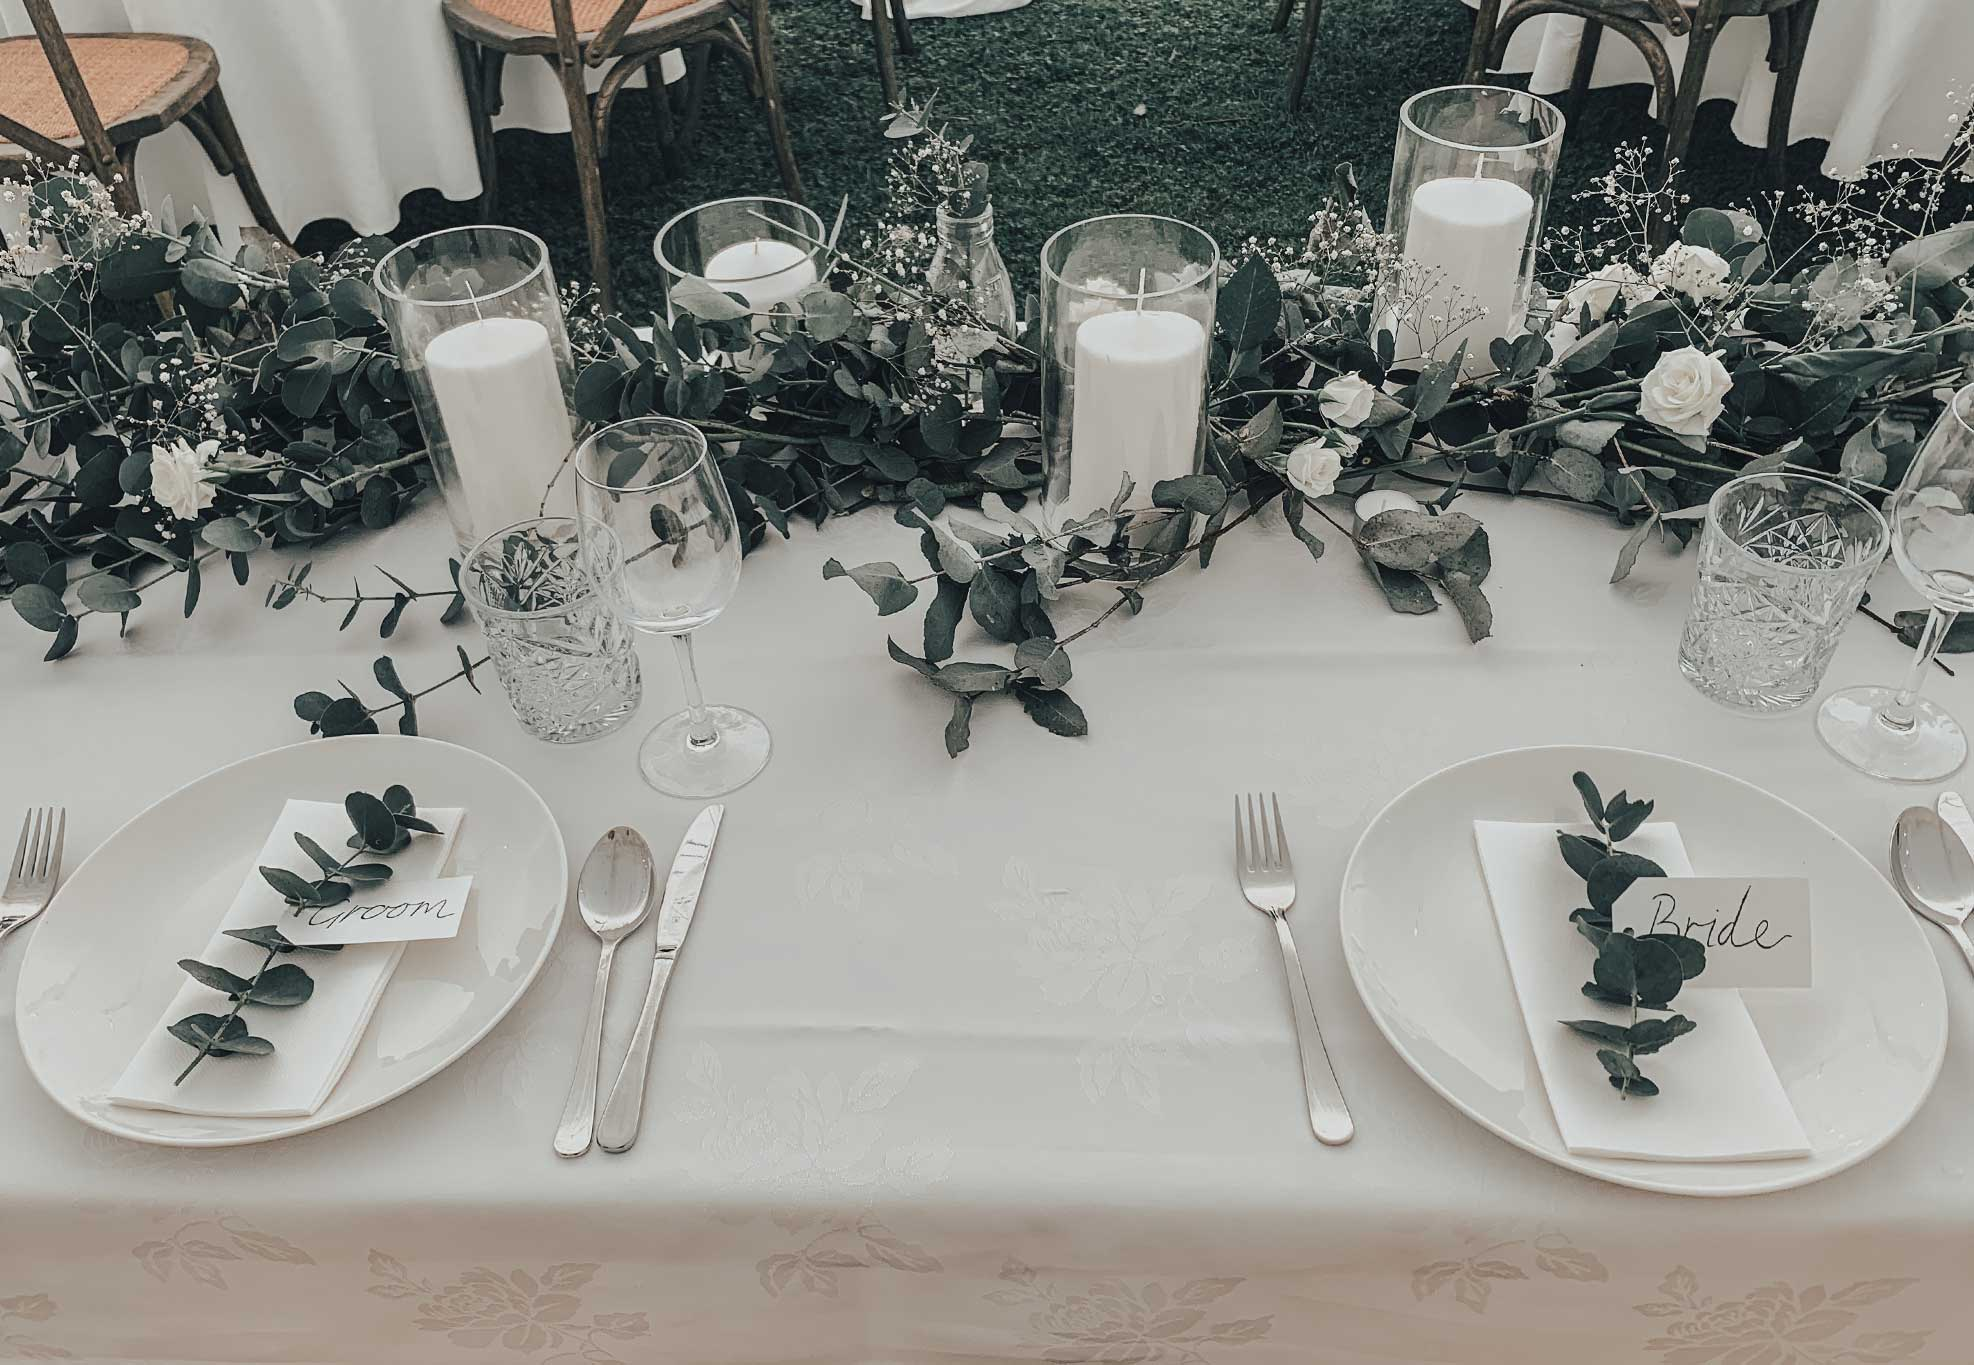 silk-estate-marquee-weddingxs-and-events-styling-and-hire-crockery-dinner-plate-2